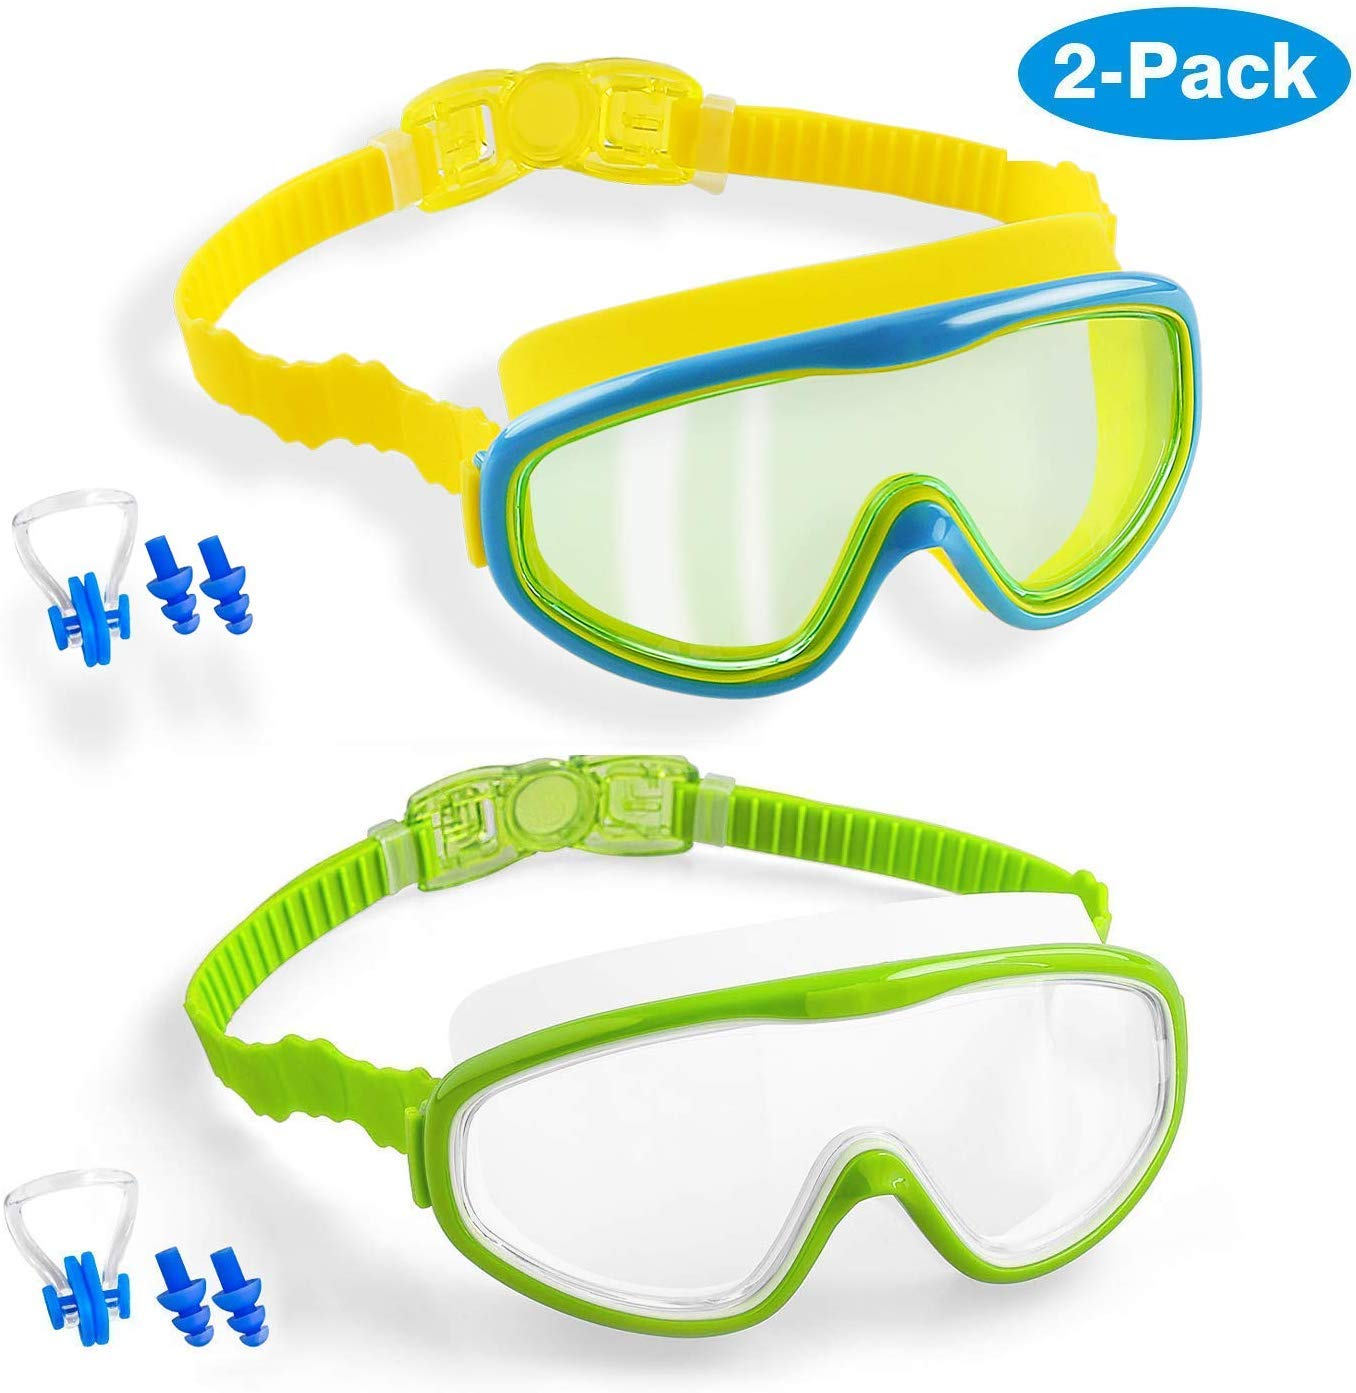 Elimoons Kids Swim Goggles 2-Pack Wide Vision Swimming Glasses for Children and Early Teens from 5 to 15 Years Old UV Protection Anti-Fog Waterproof Wide Vision